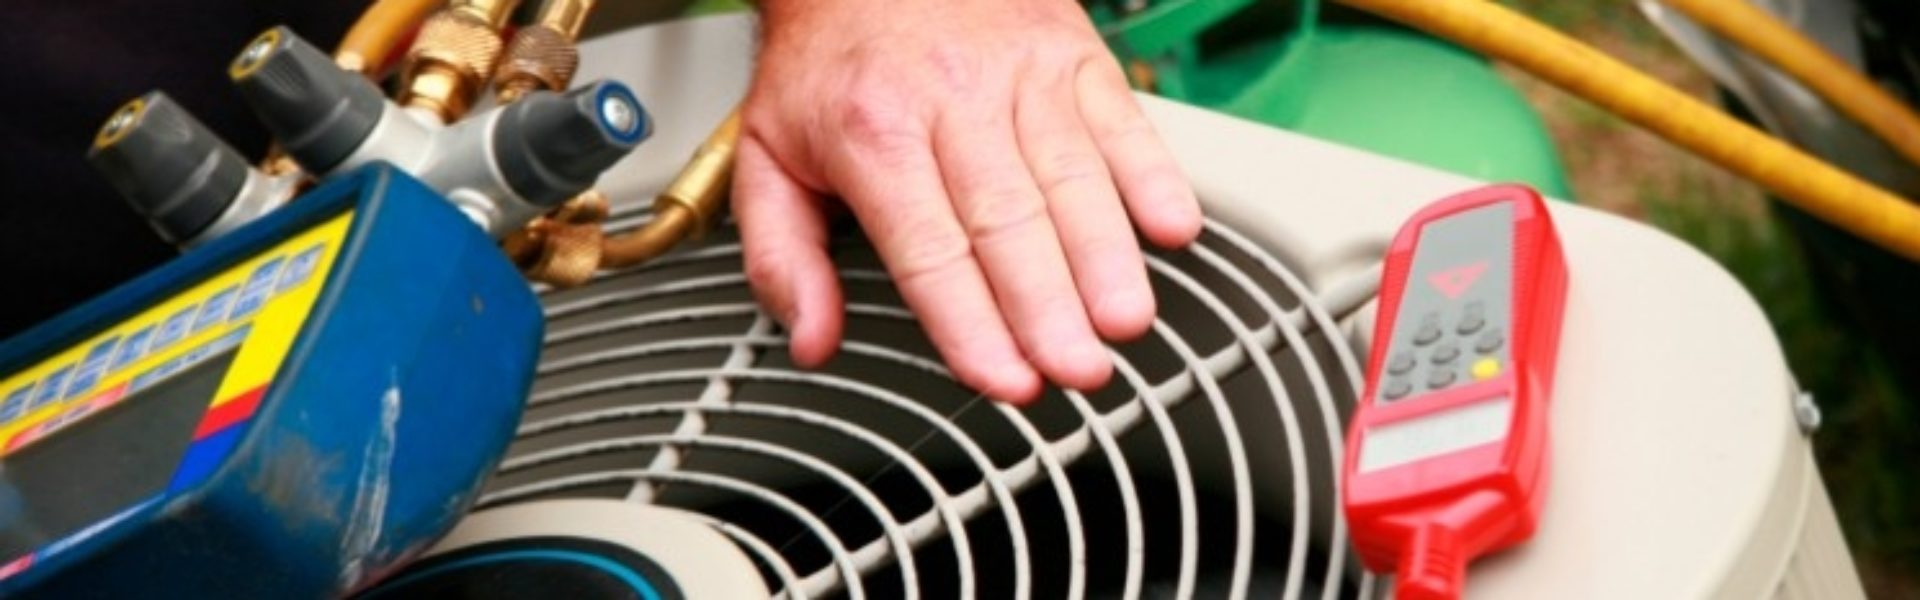 Fairfield Heating And Air Conditioning